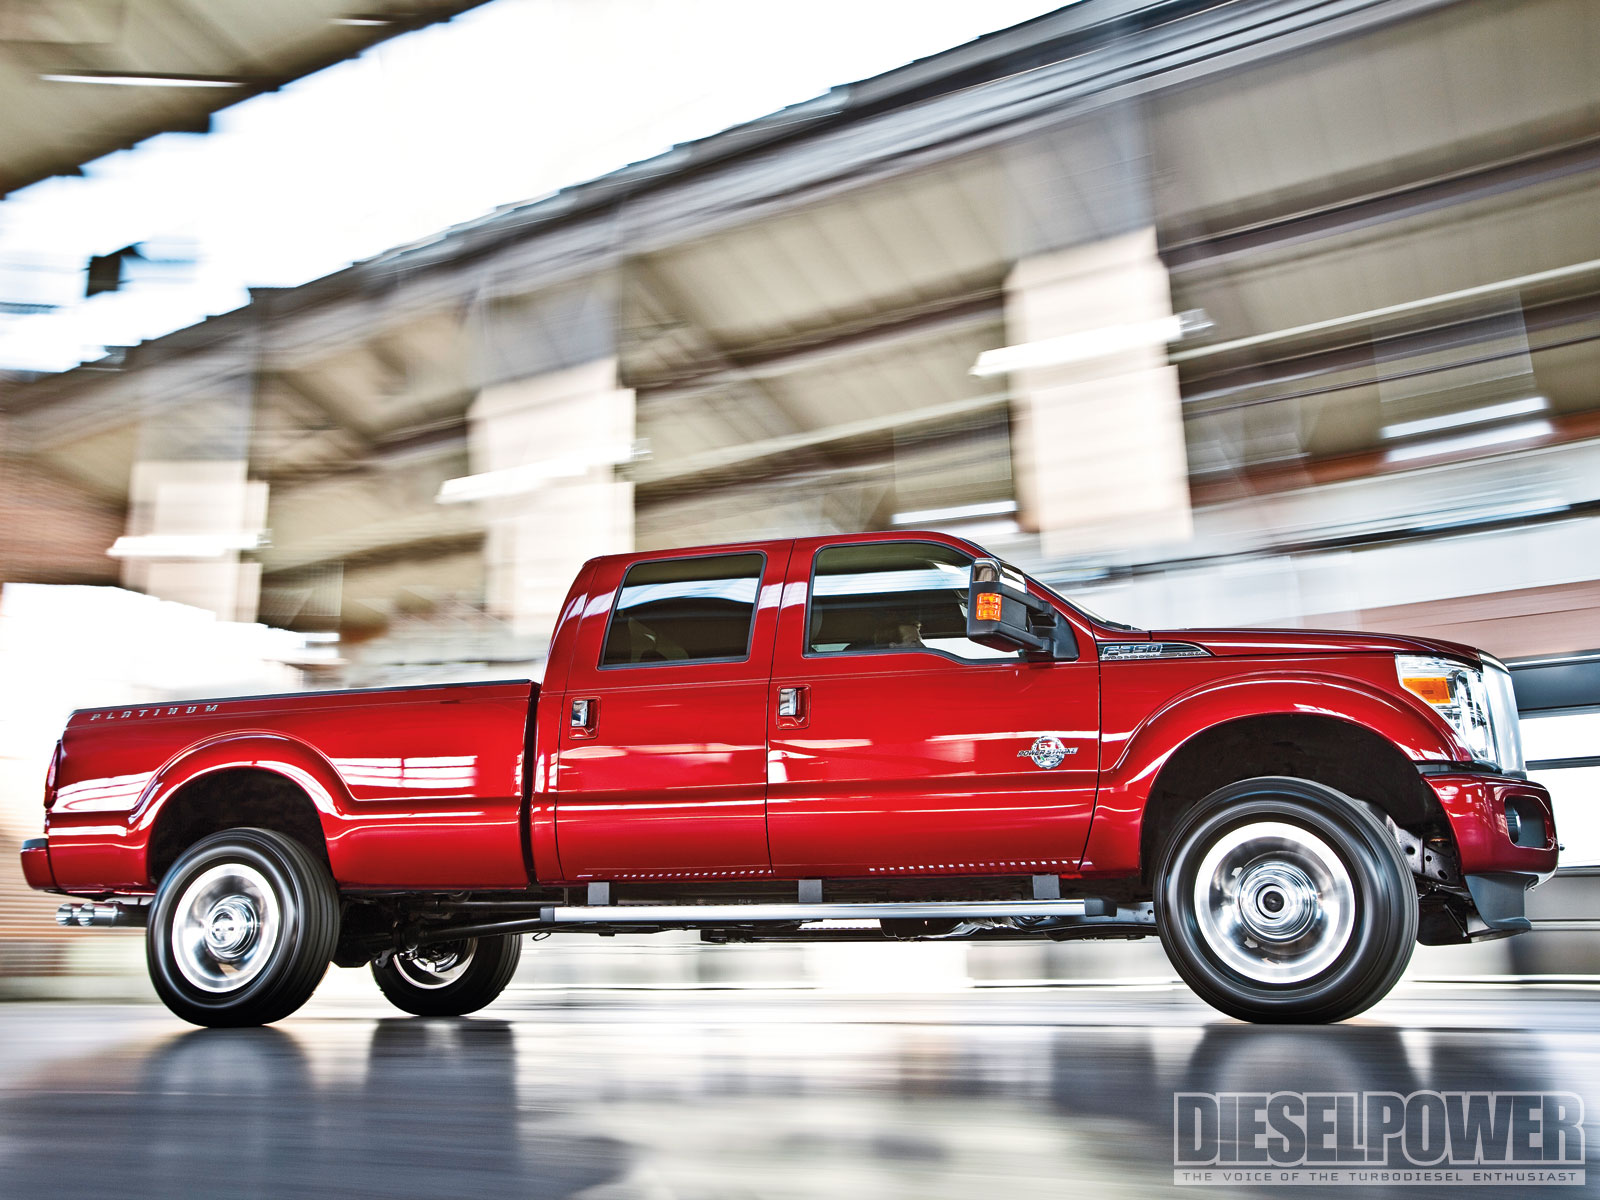 Ford F-350 Super Duty #19